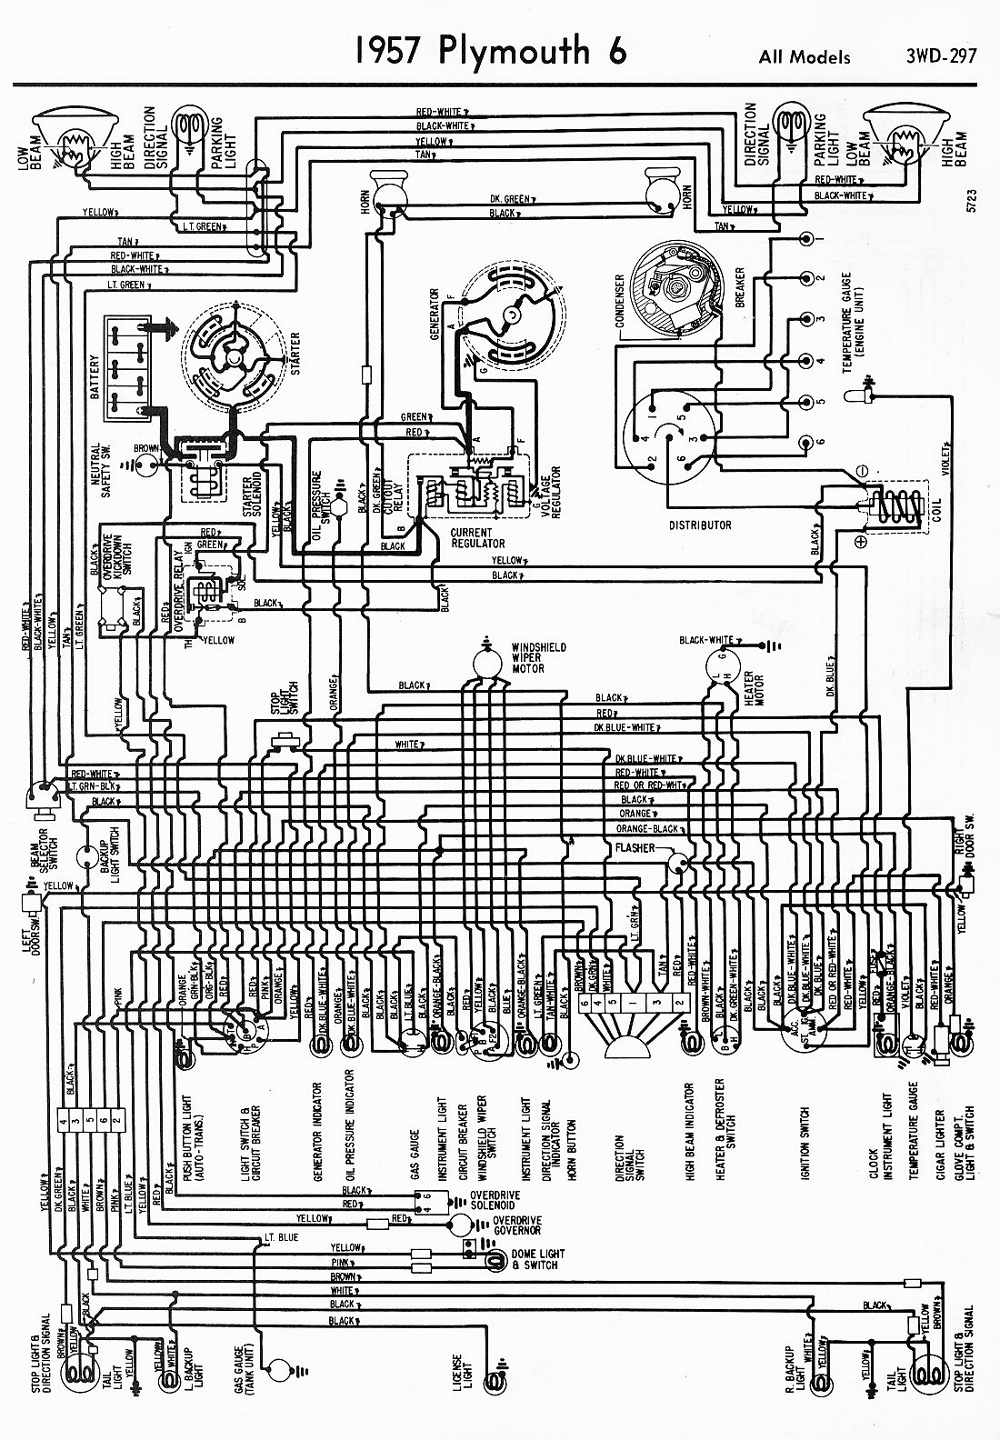 1969 Plymouth Satellite Wiring Diagram Data 1967 Mercury Cougar Ignition On Barracuda Generation 4 Chevy